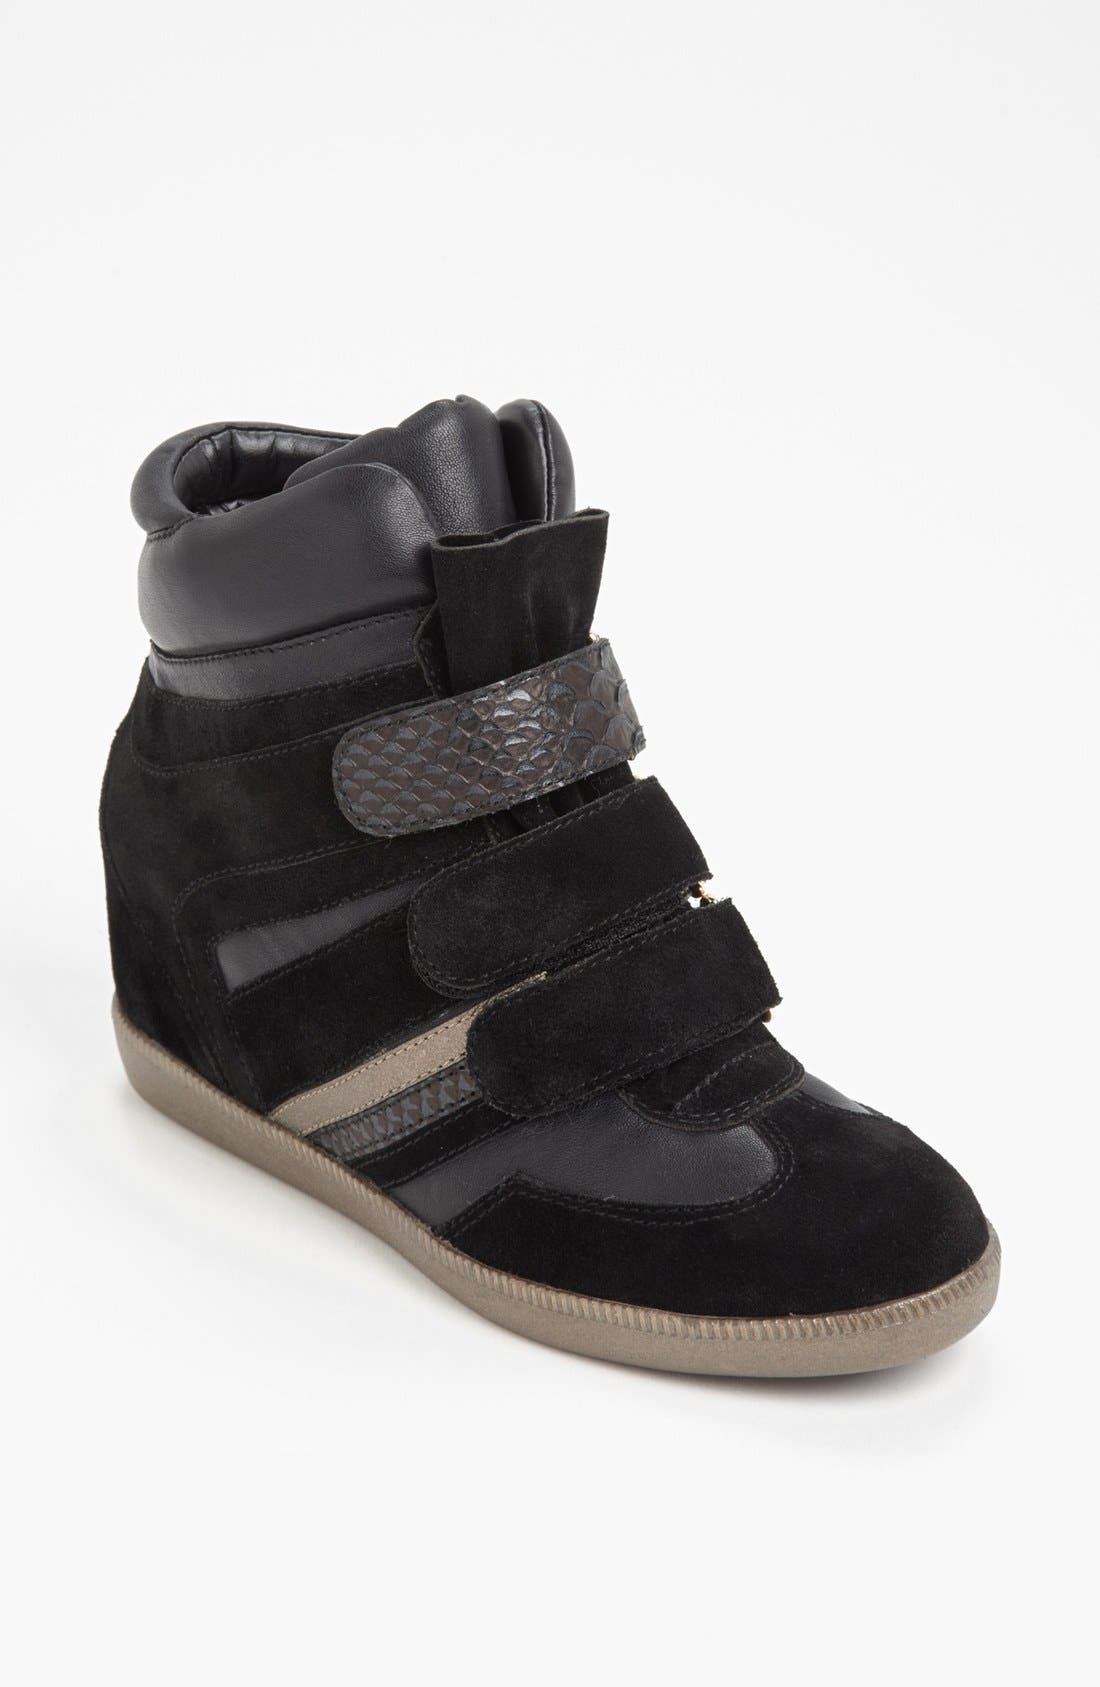 Alternate Image 1 Selected - BCBGeneration 'Anthony' Wedge Sneaker